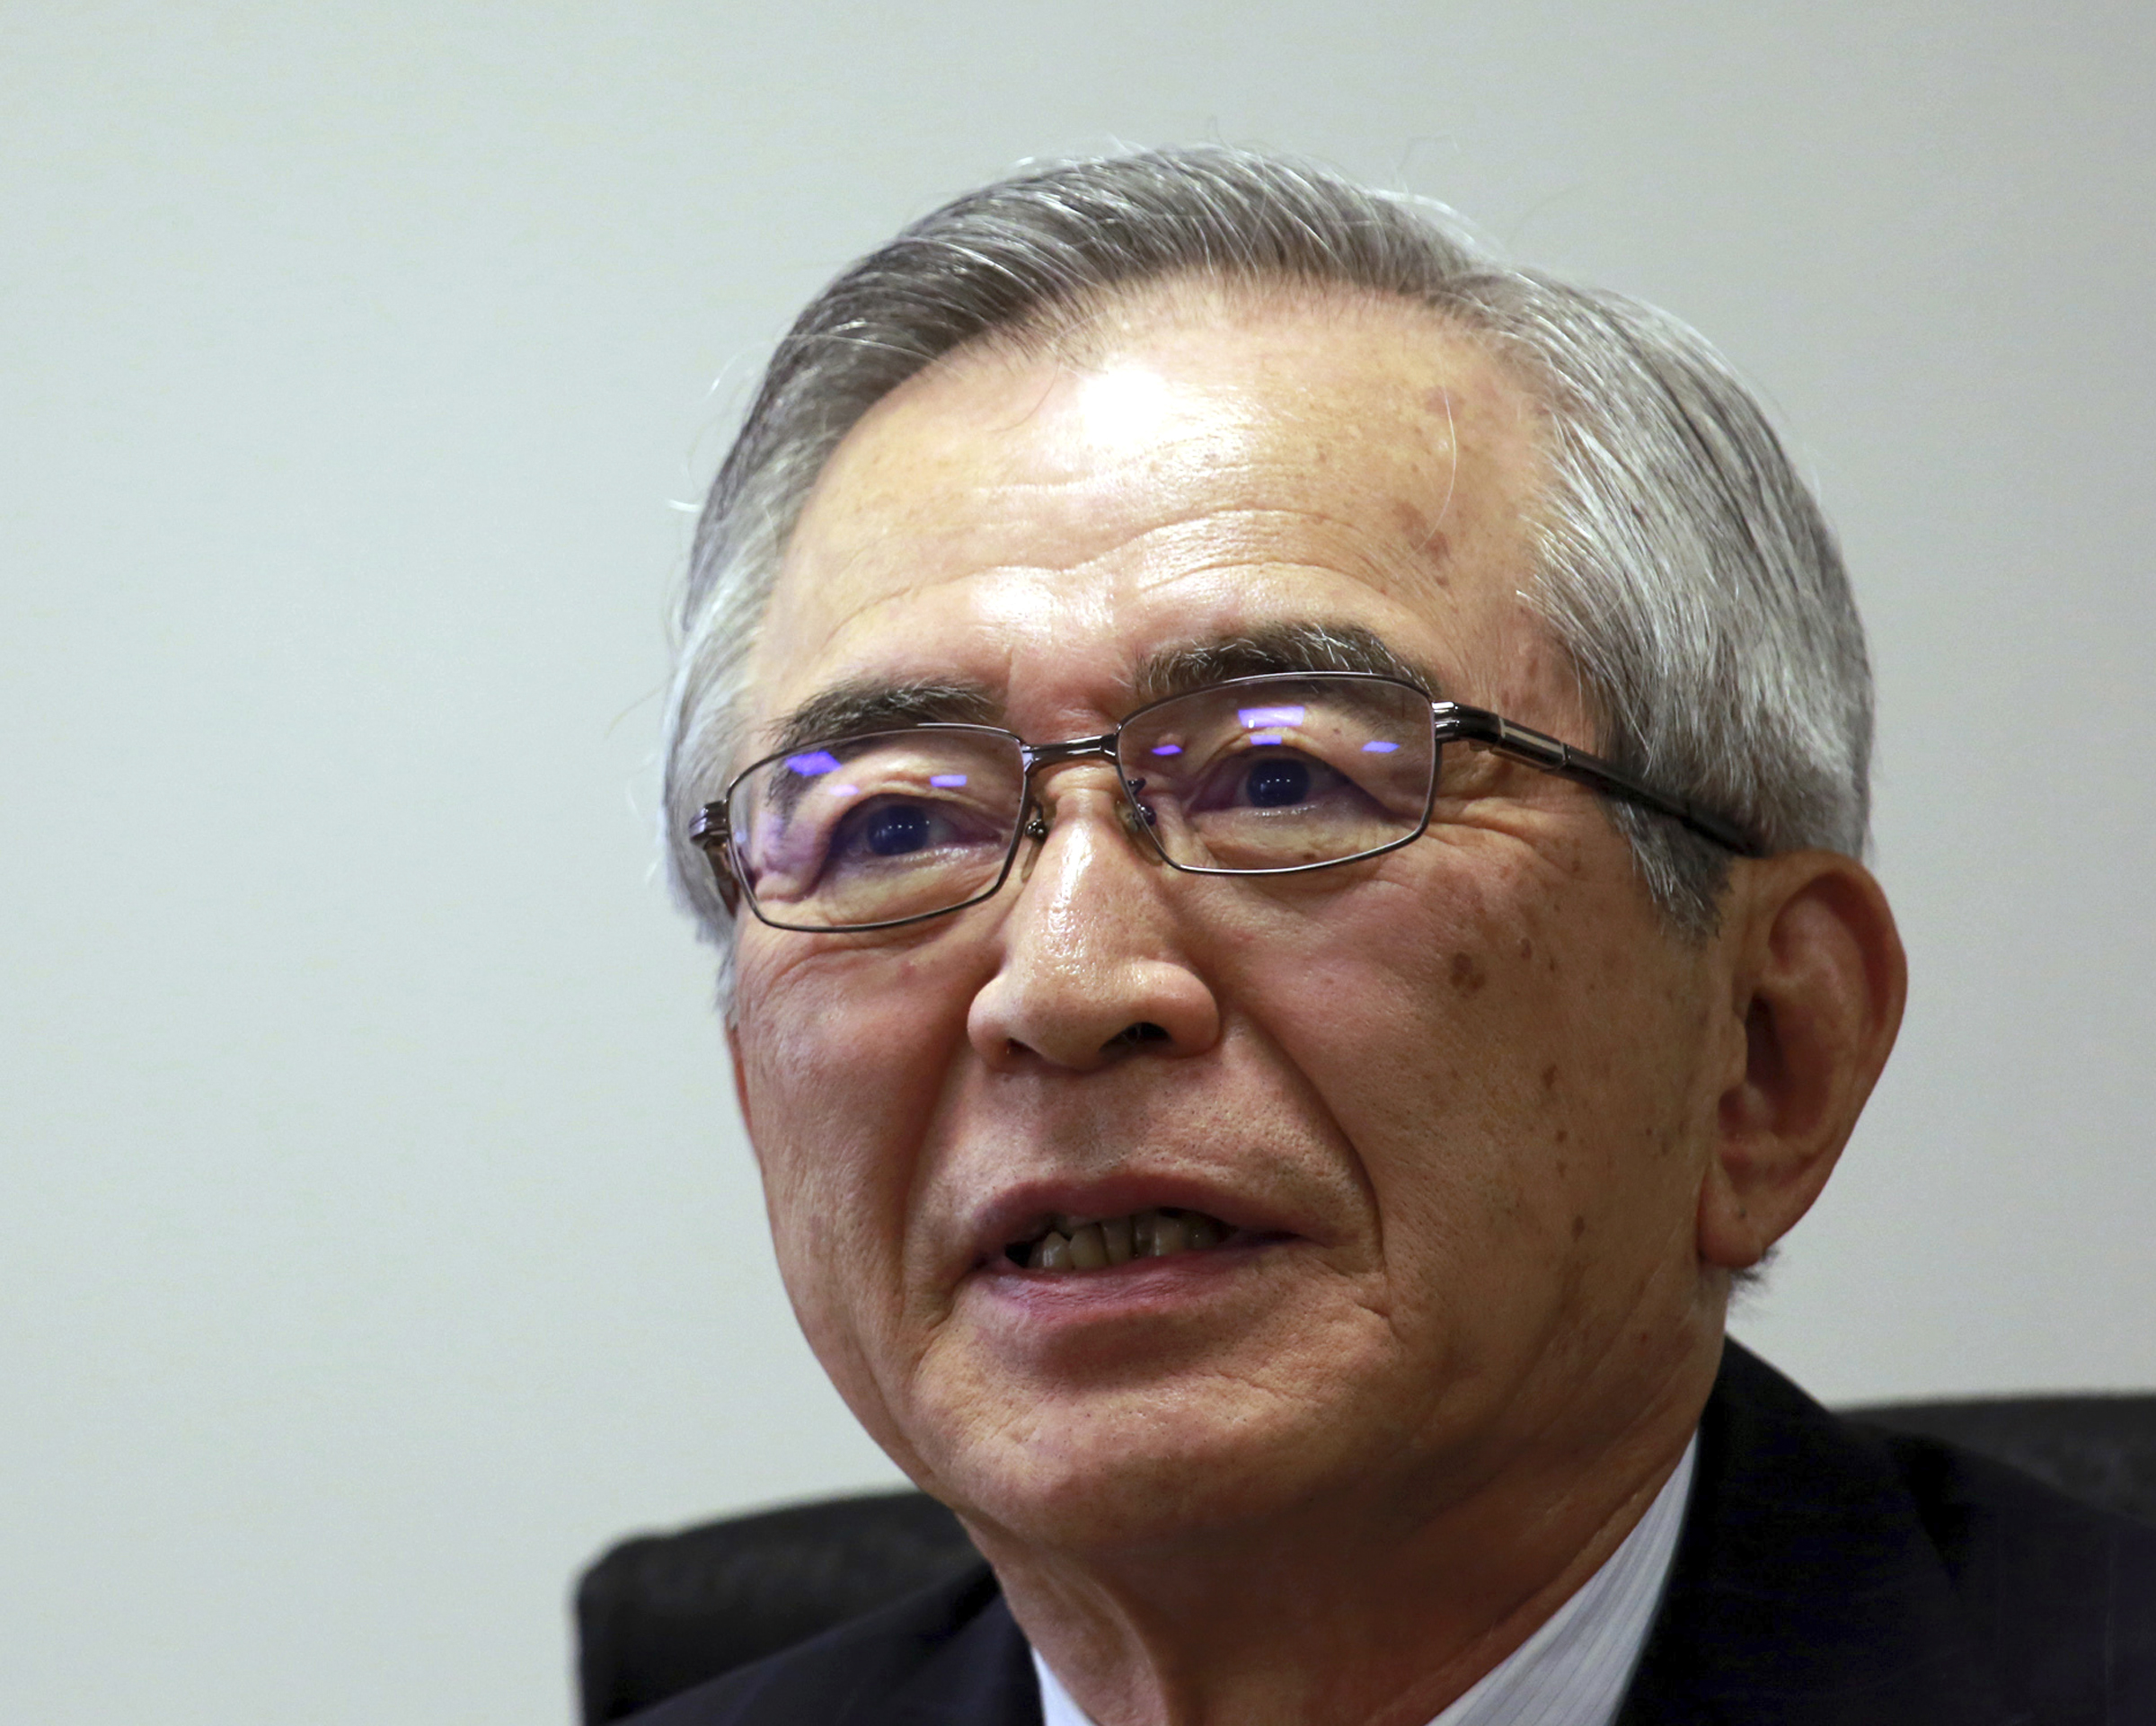 Japan Nuclear-4 Tokyo Electric Power Co.'s new Chairman Takashi Kawamura speaks during an interview at the TEPCO headquarters in Tokyo on Thursday, July 13, 2017. Kawamura said the utility needs to stop dragging its feet on plans to dump massive amounts of treated but contaminated water into the sea and make more money if it's ever going to succeed in cleaning up the mess left by meltdowns more than six years ago at the tsunami-hit Fukushima nuclear power plant. (AP Photo/Eugene Hoshiko)